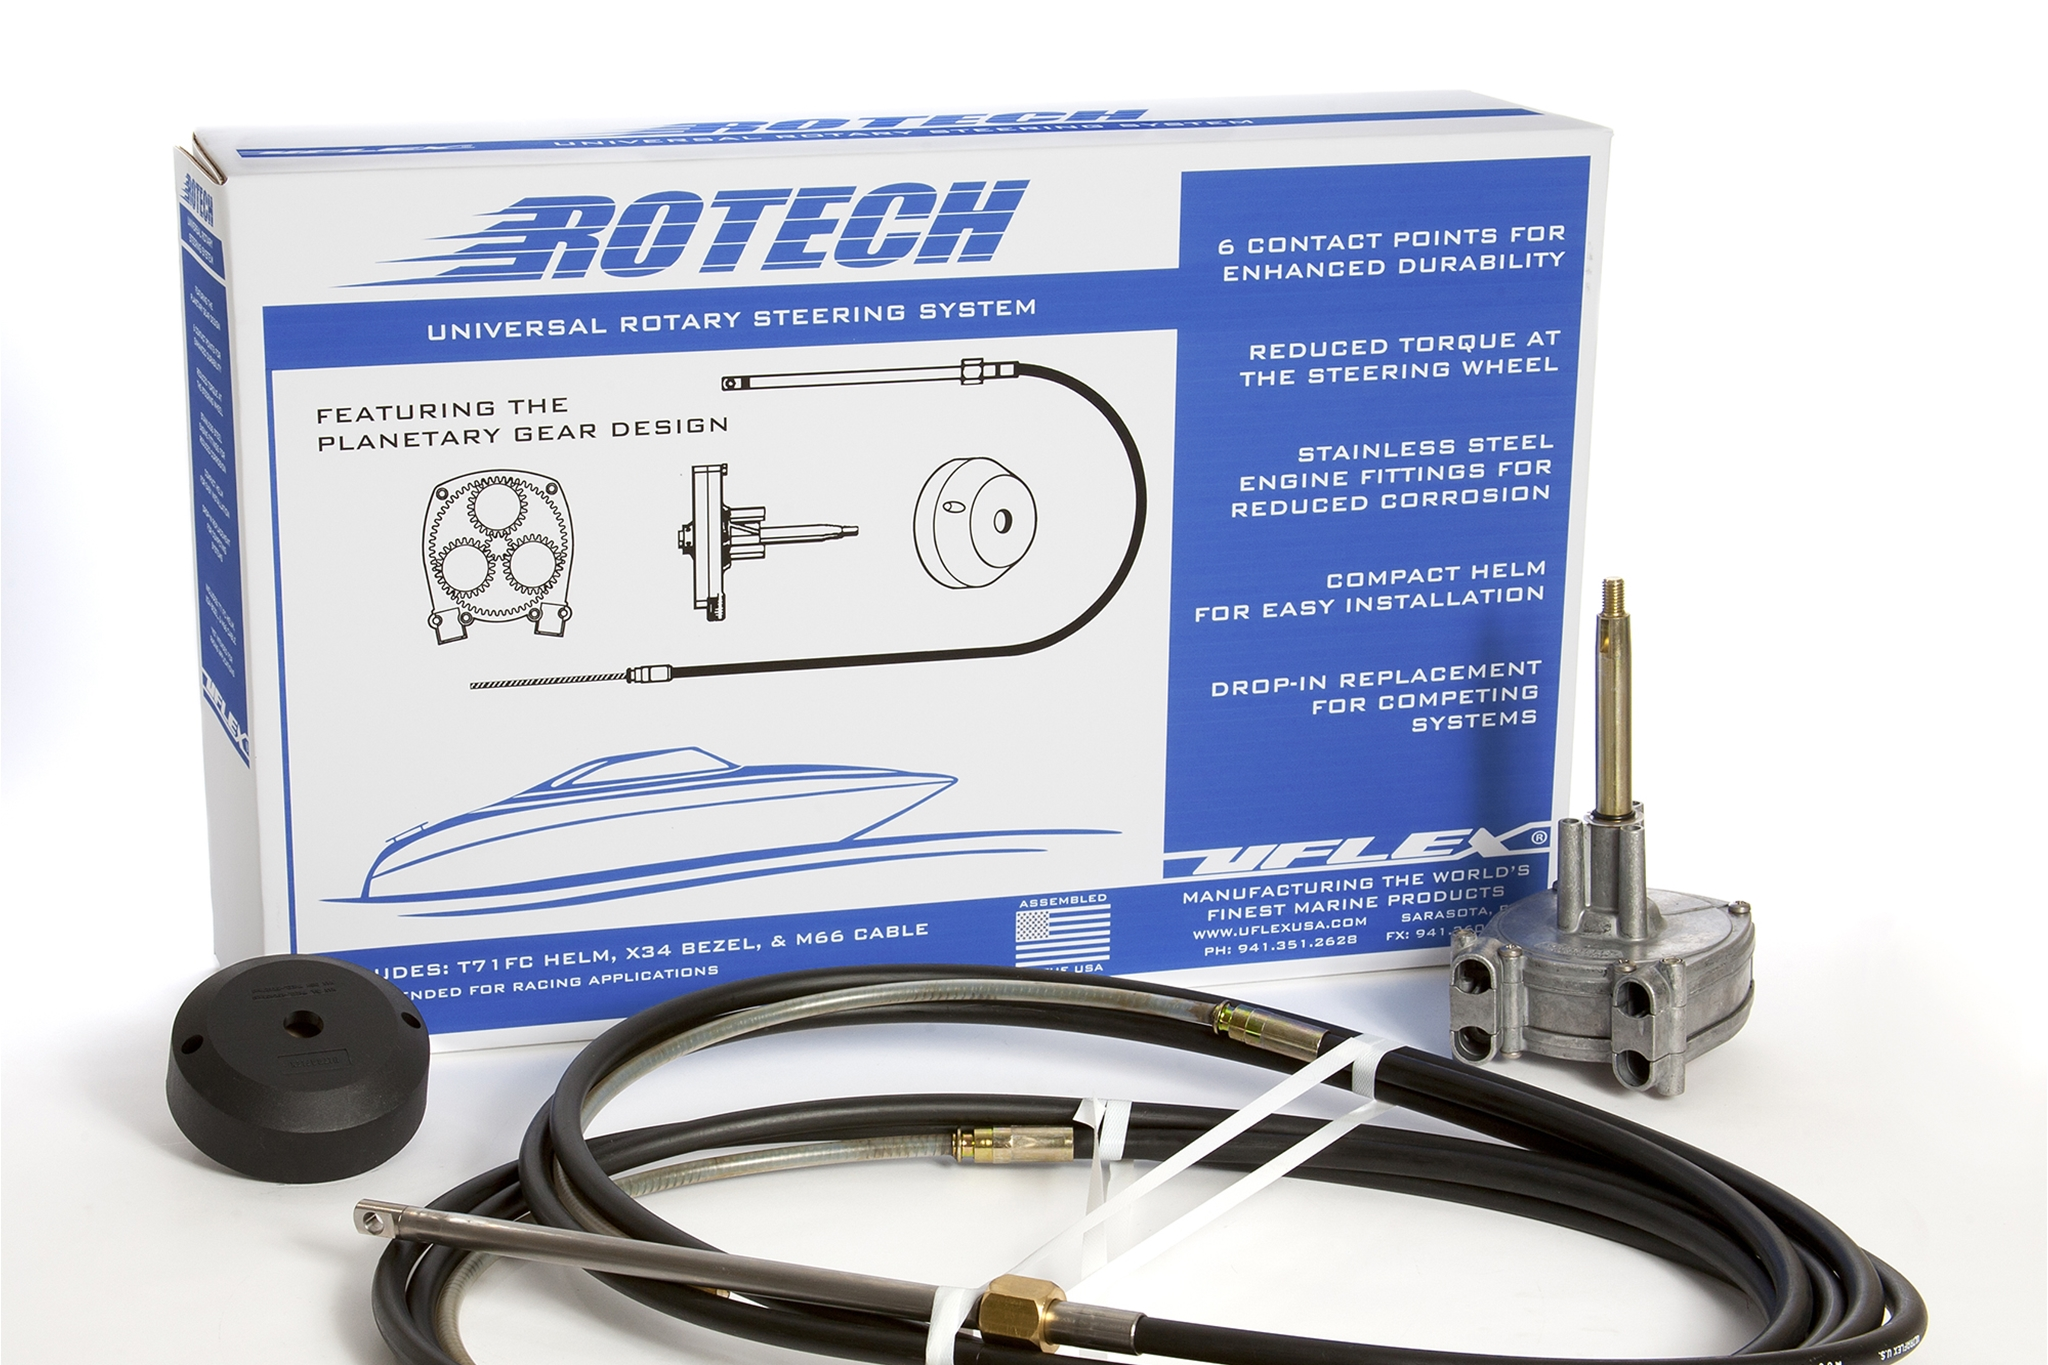 Rotech Dual Cable Rotary Steering System